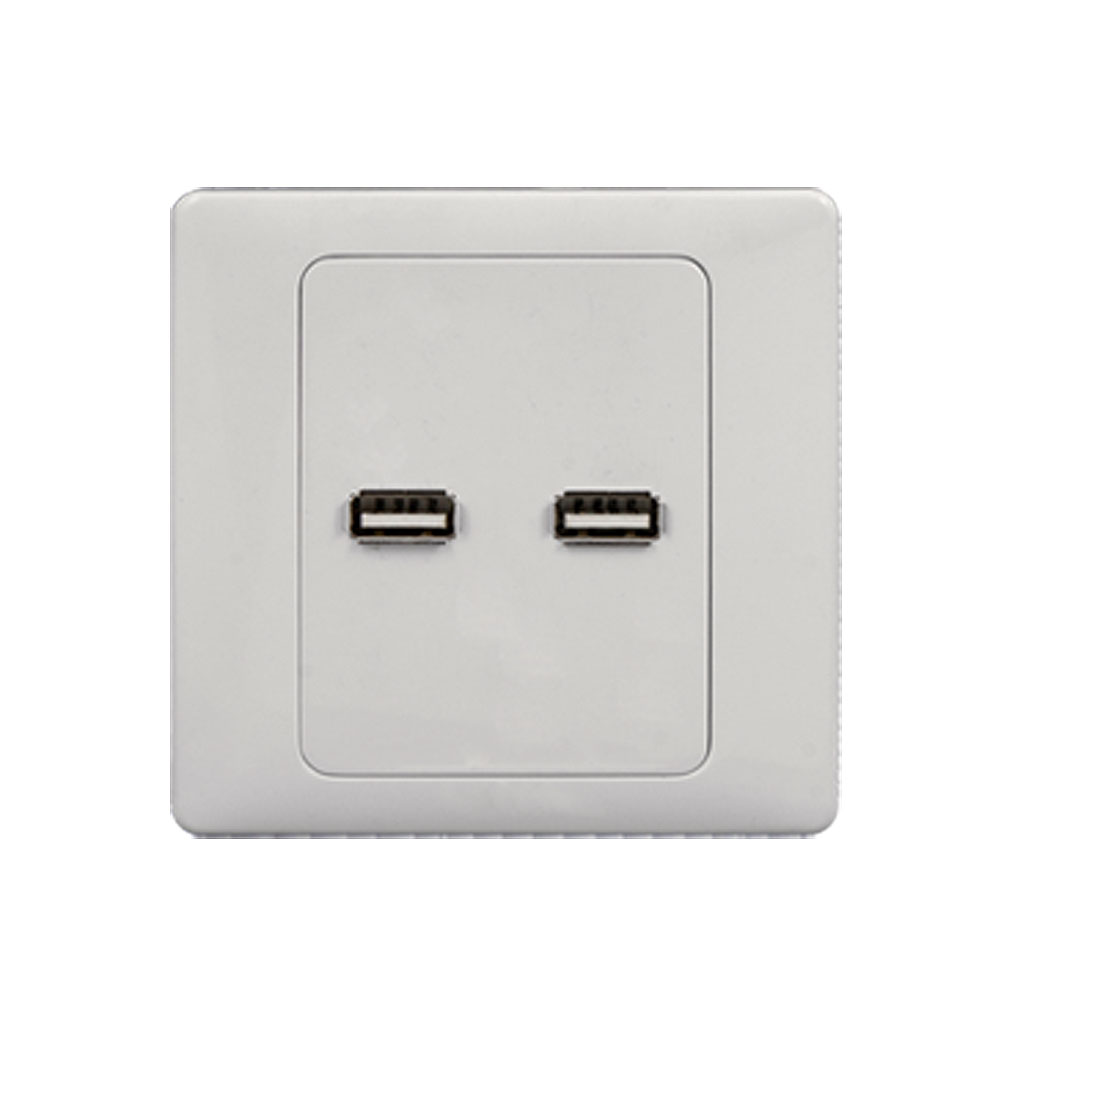 Dual Two USB Ports Wall Plate Coupler Outlet Socket Panel